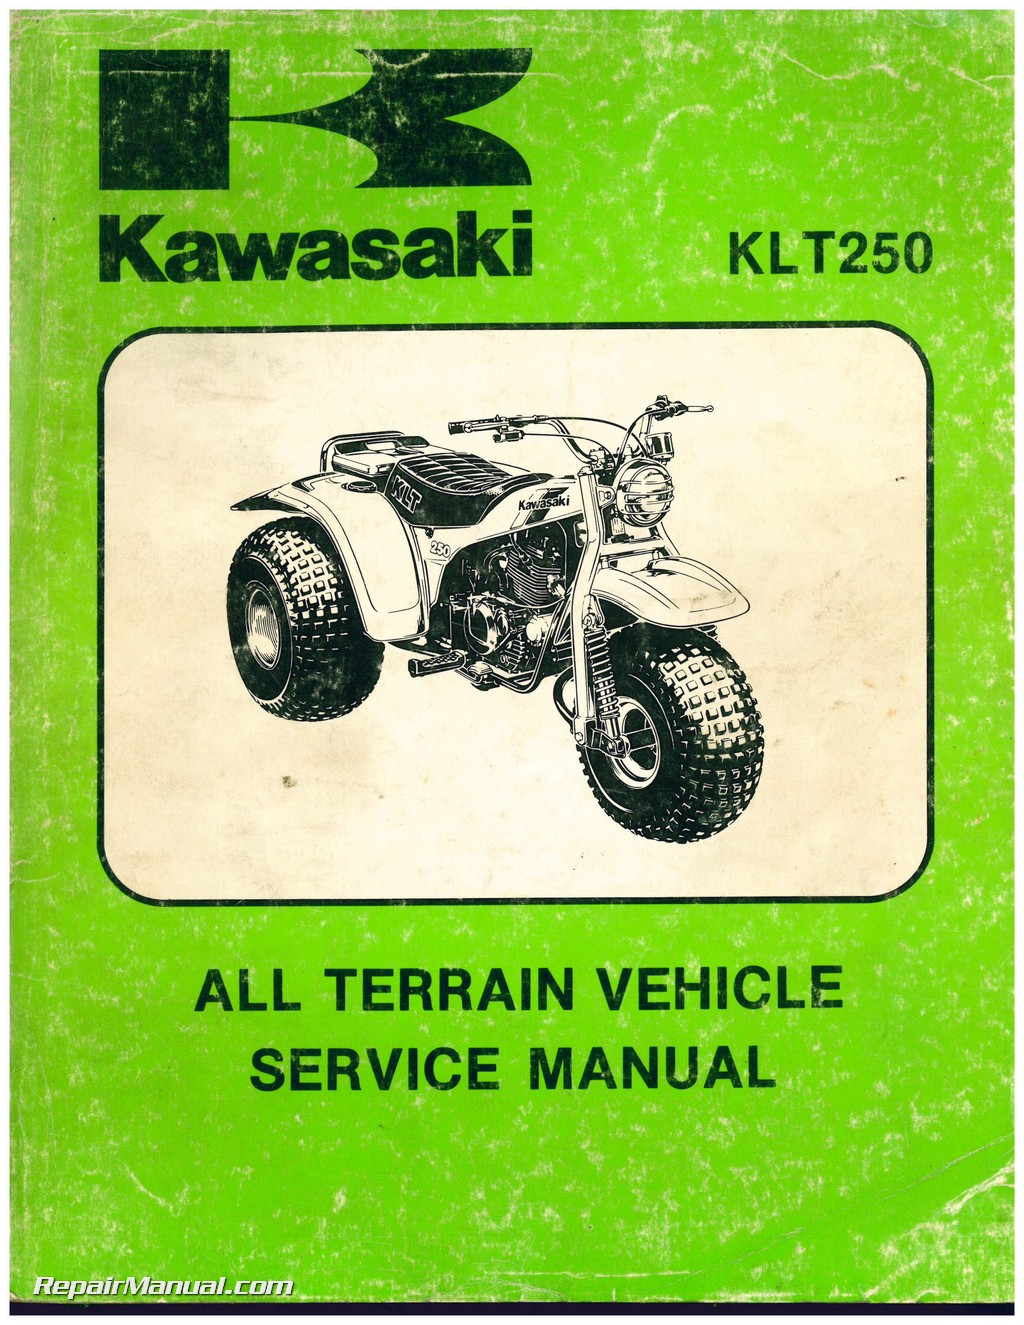 hight resolution of 1982 kawasaki klt250 a1 3 wheel atc printed service manual rh repairmanual com yamaha 250 four